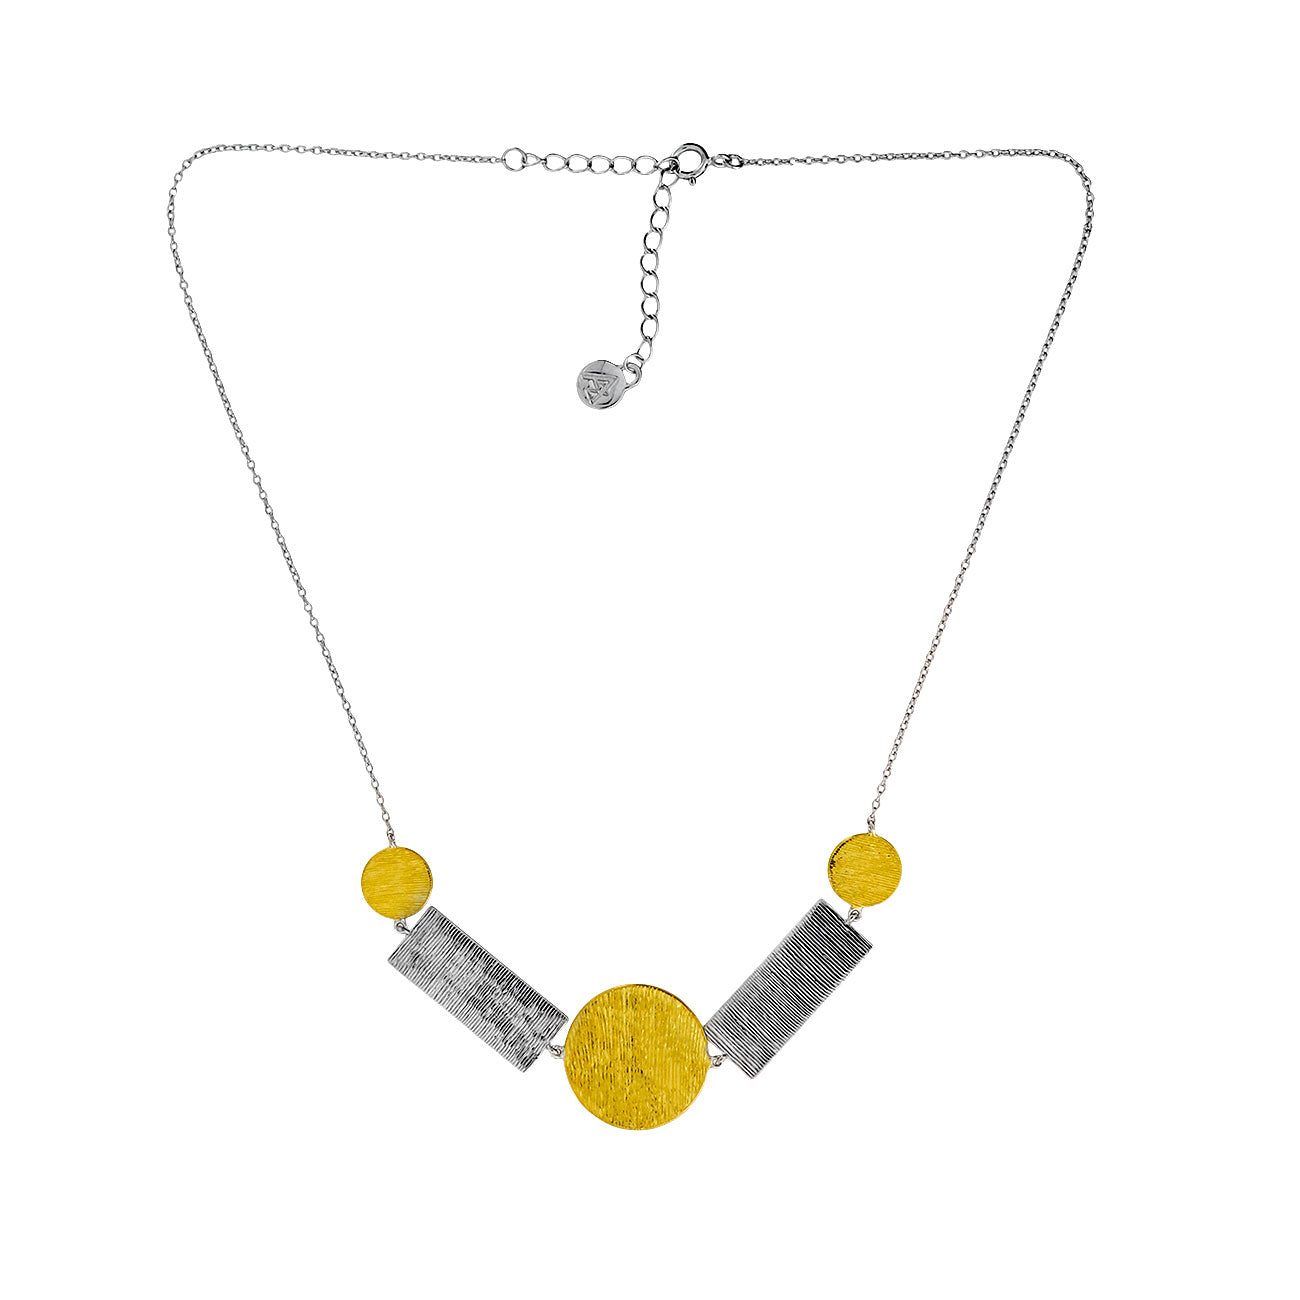 Silver & Vermeil Textured Shapes Necklace